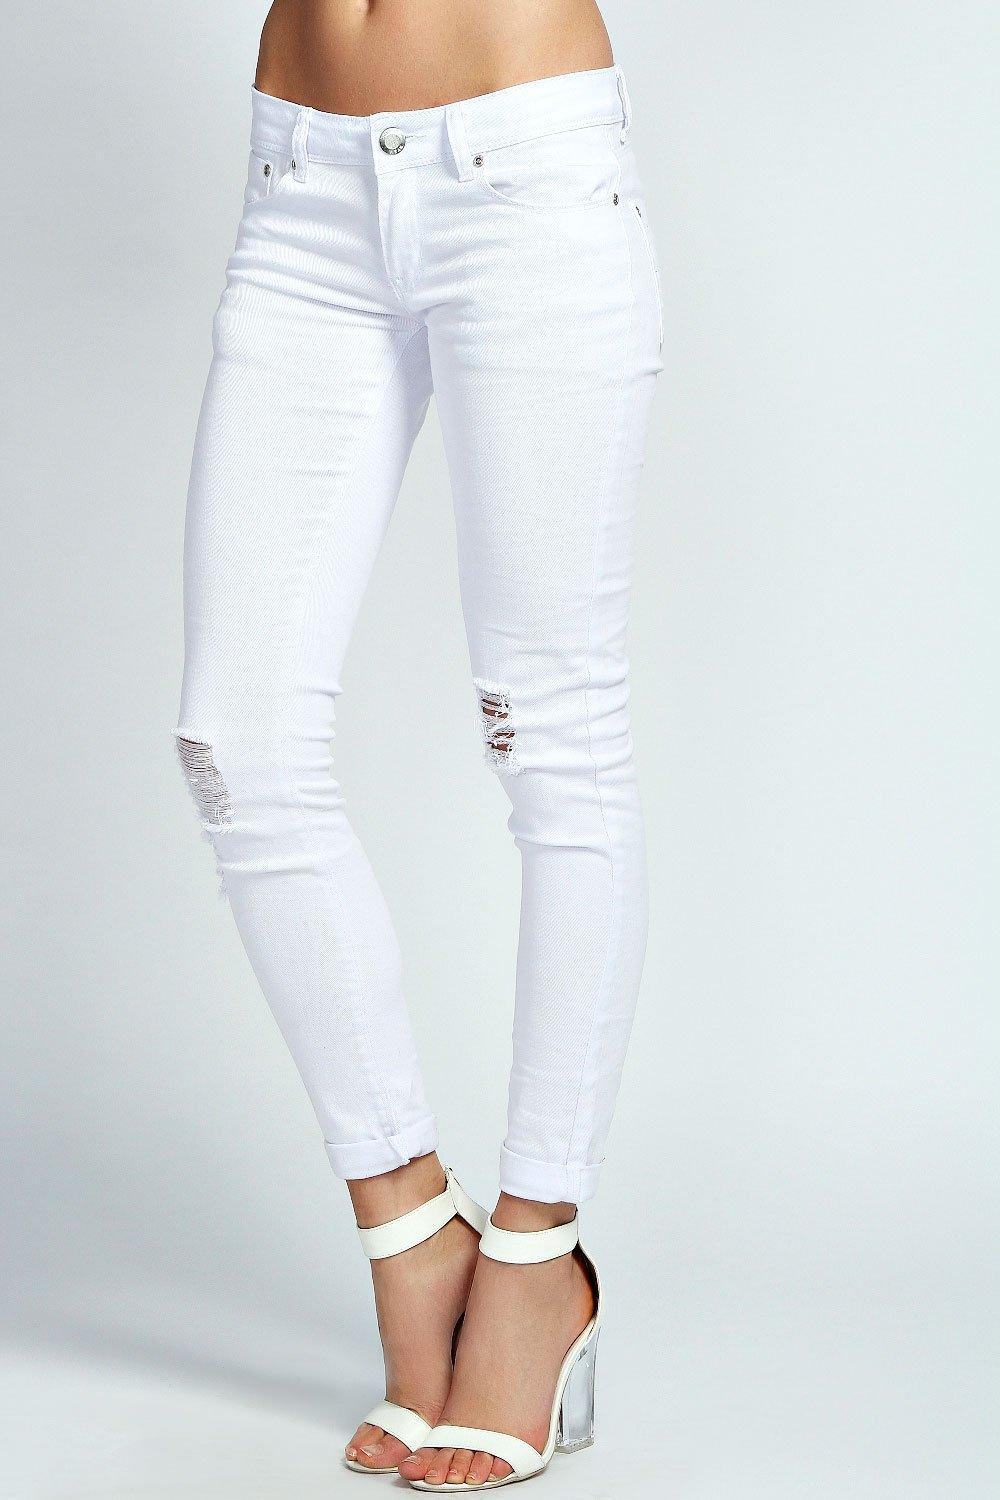 Alesha Open Knee Skinny White Jeans